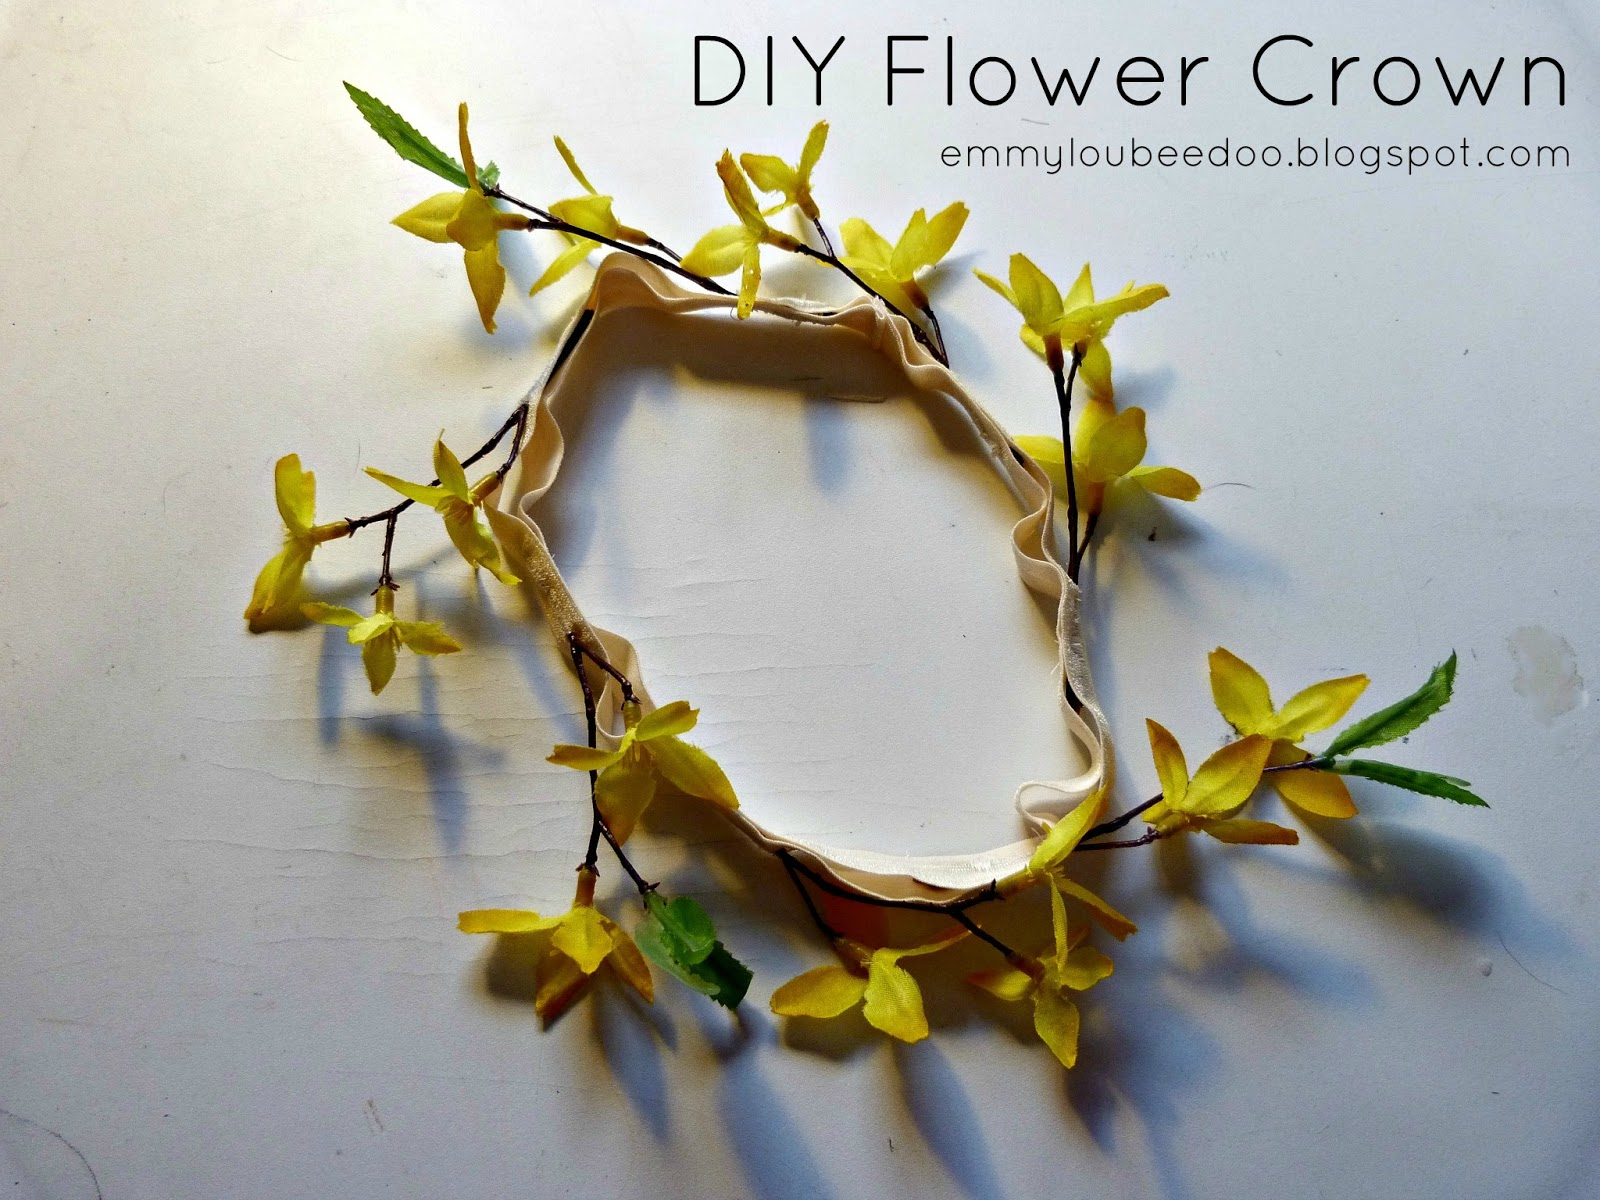 EmmylouBeeDoo DIY Flower Crown Tutorial